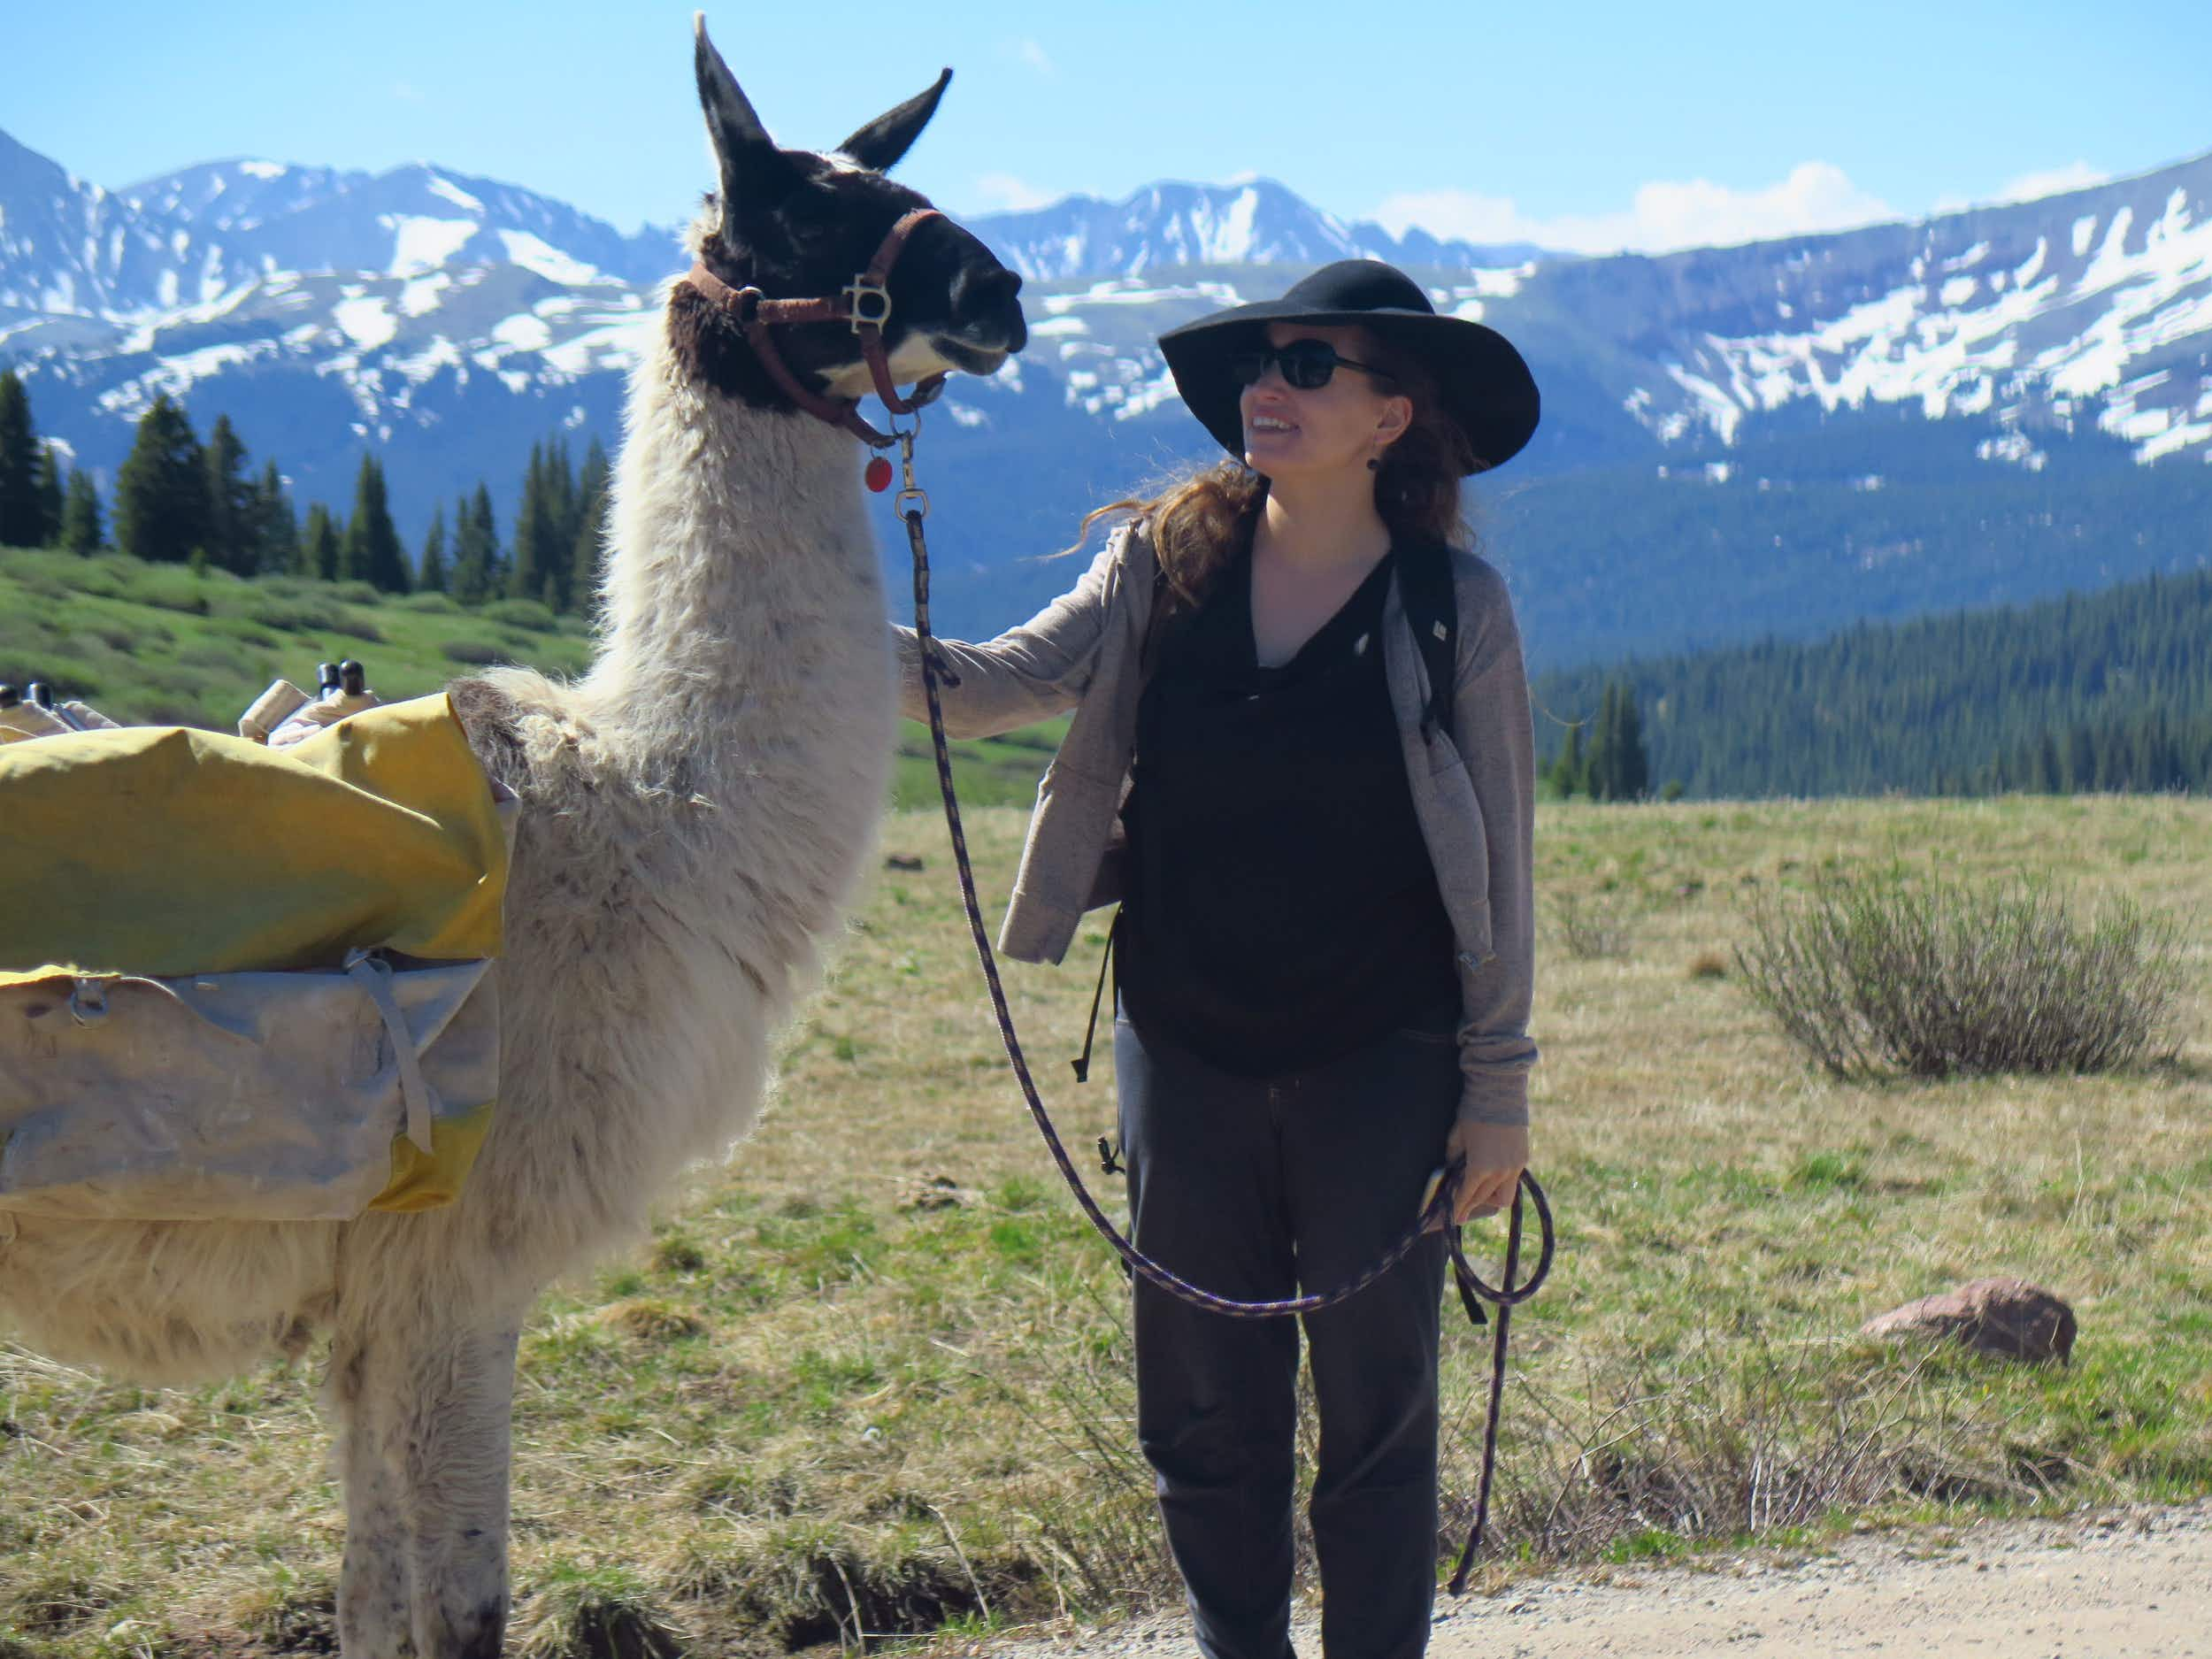 Trek with llamas to a special al fresco lunch at this Colorado retreat